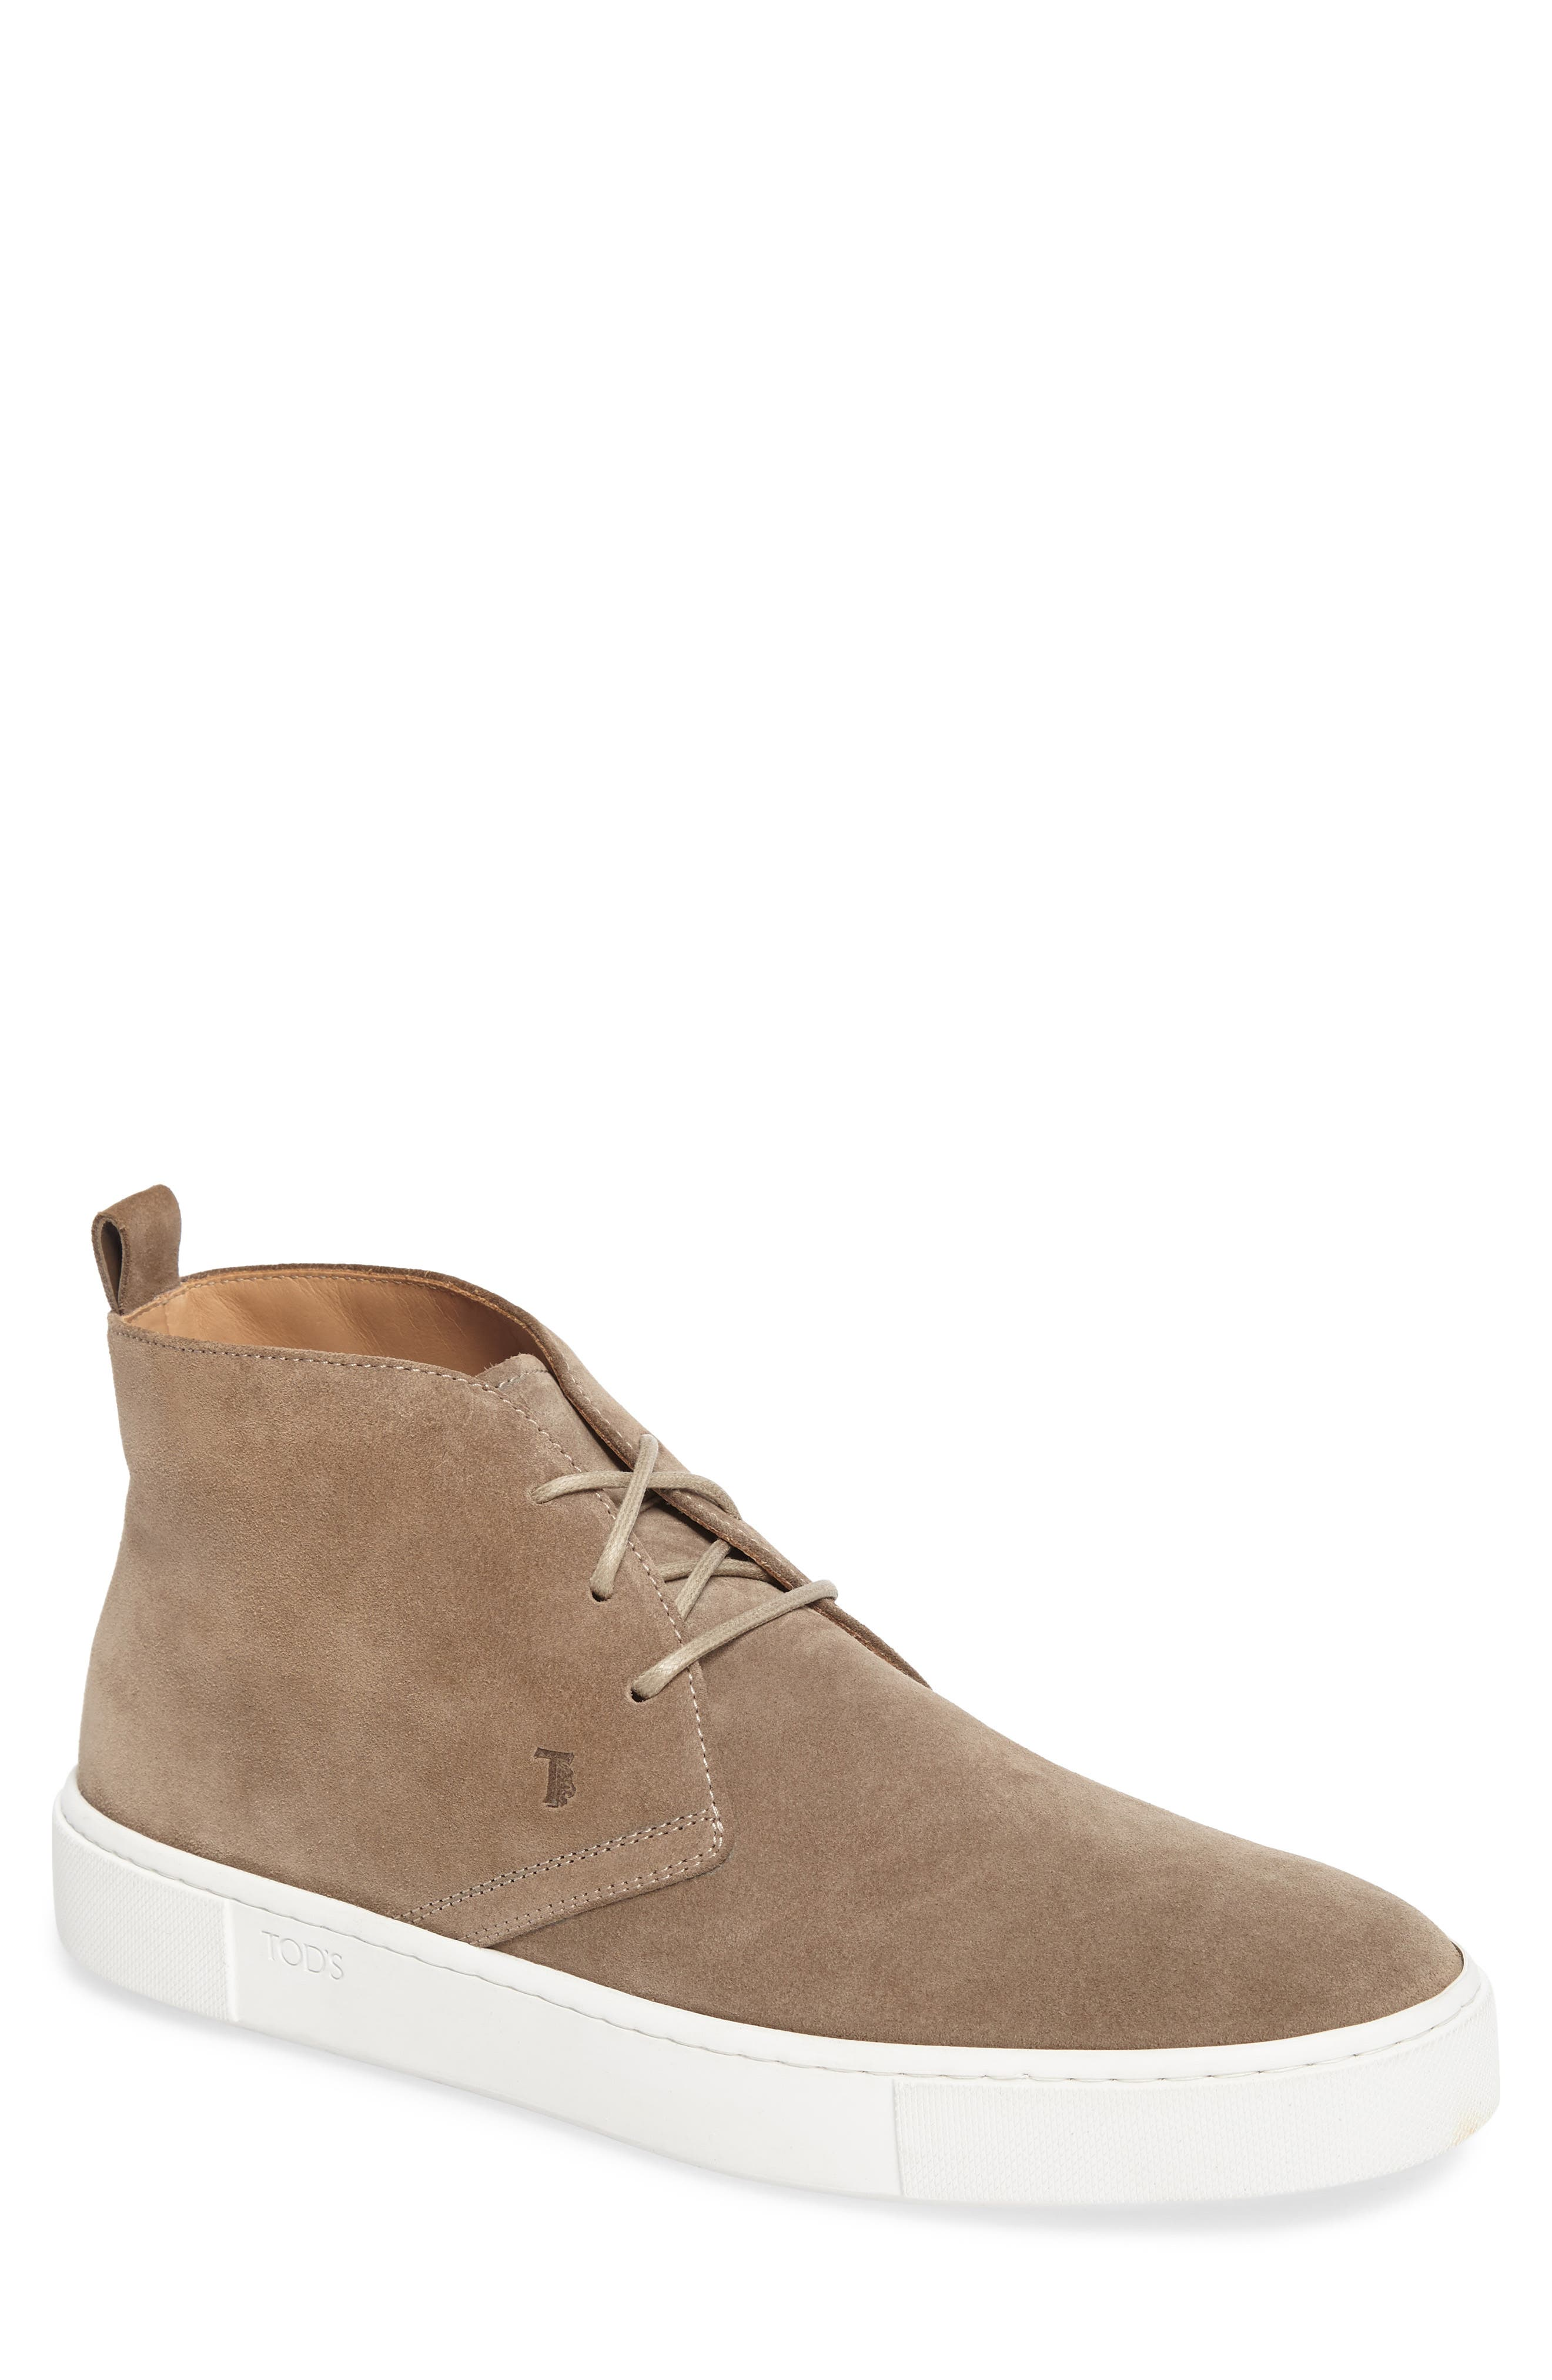 Alternate Image 1 Selected - Tod's Leather Chukka Boot (Men)